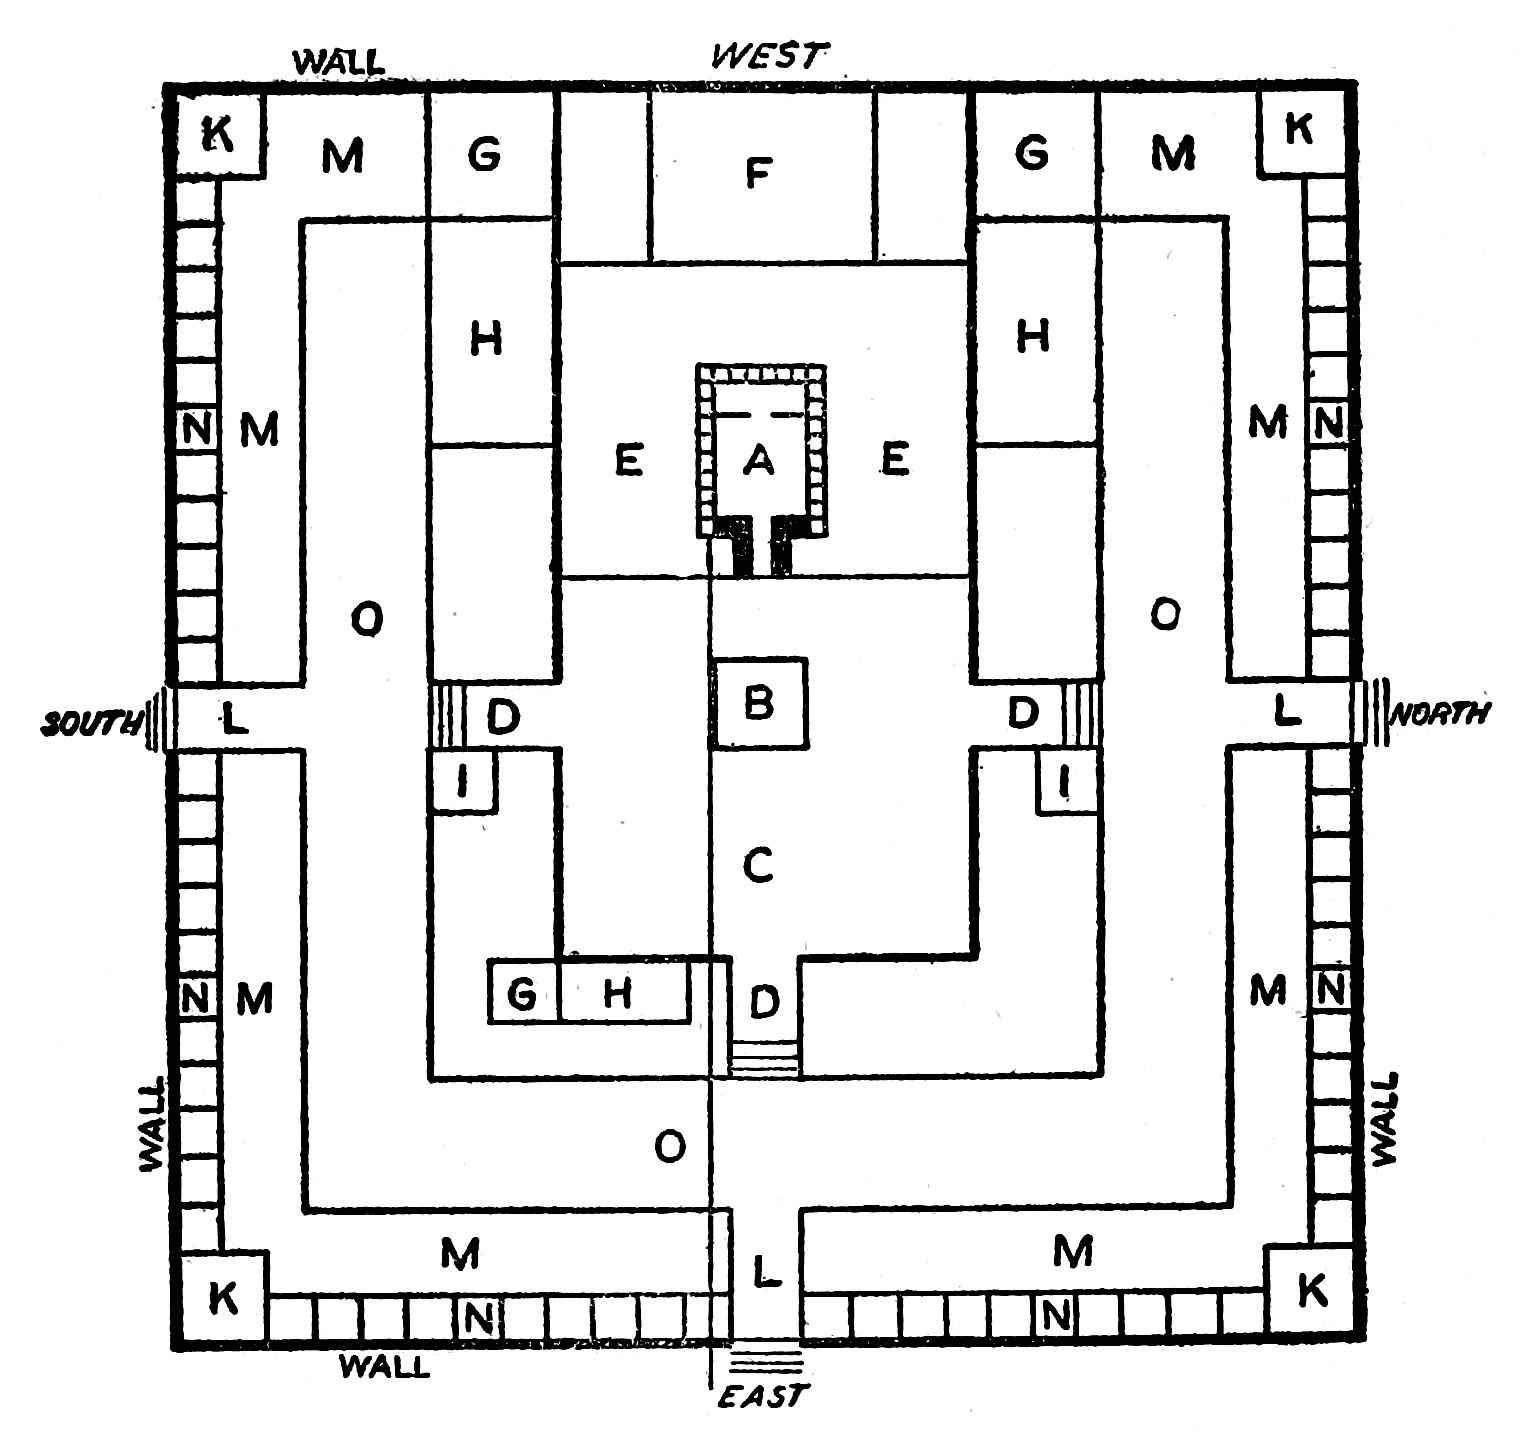 File:Ground Plan of Ezekiel's Temple.png - Wikimedia Commons